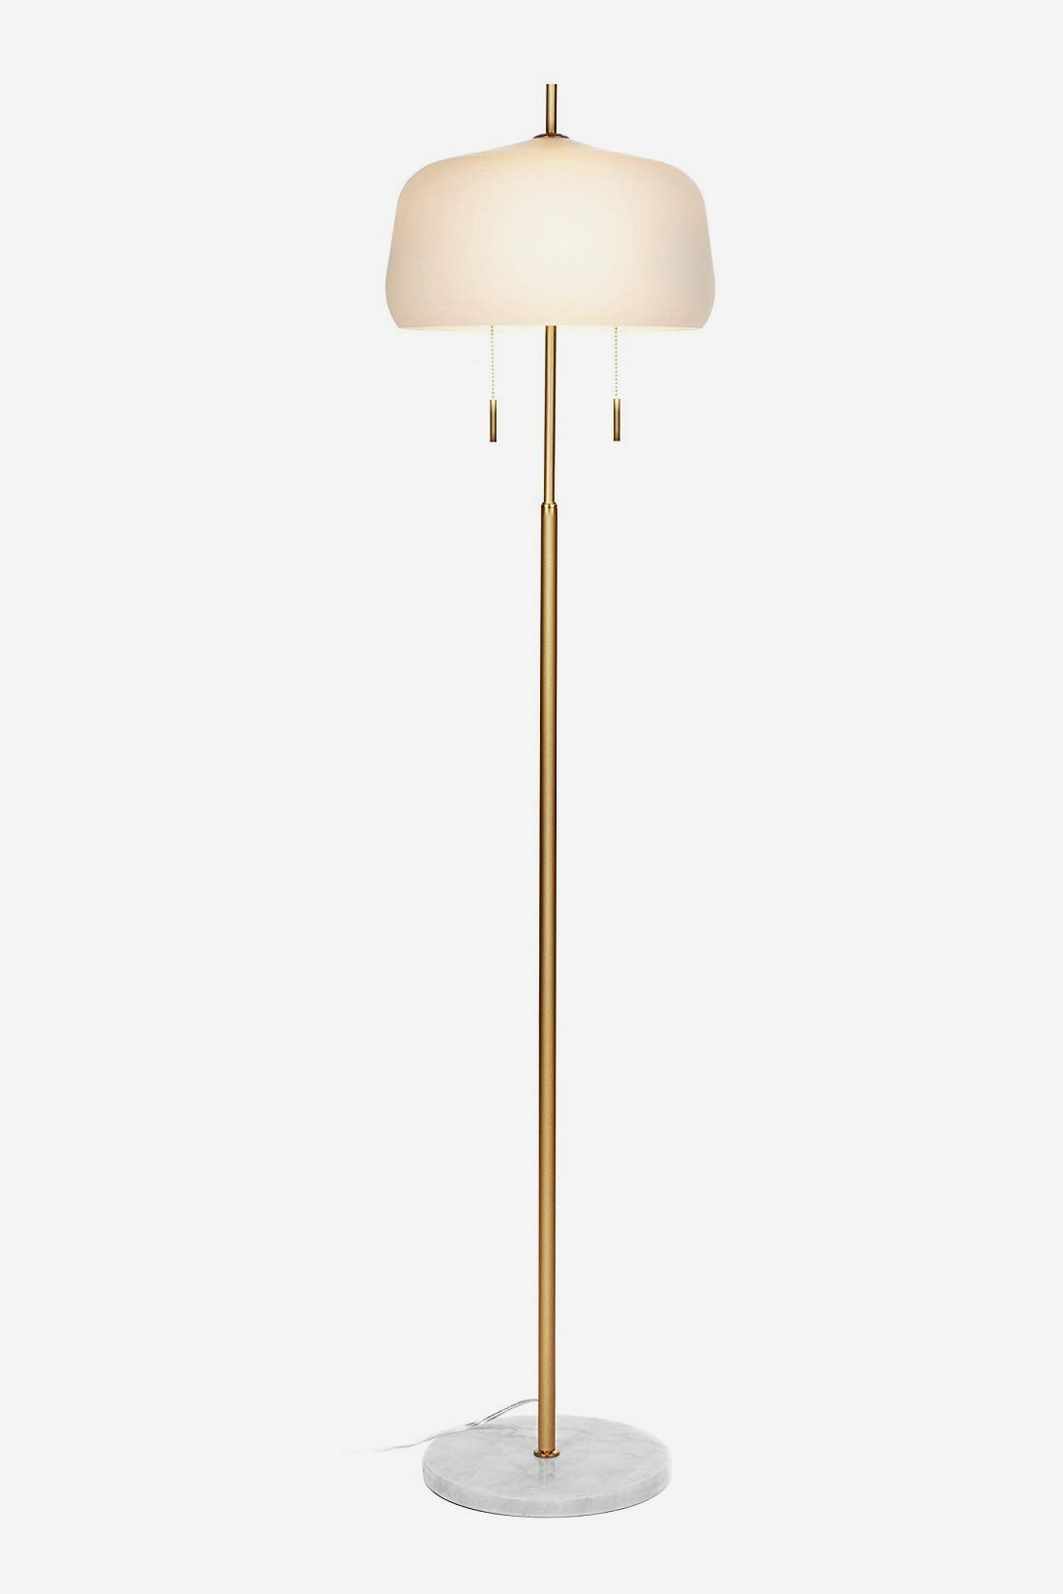 Brightech Aria LED Floor Lamp